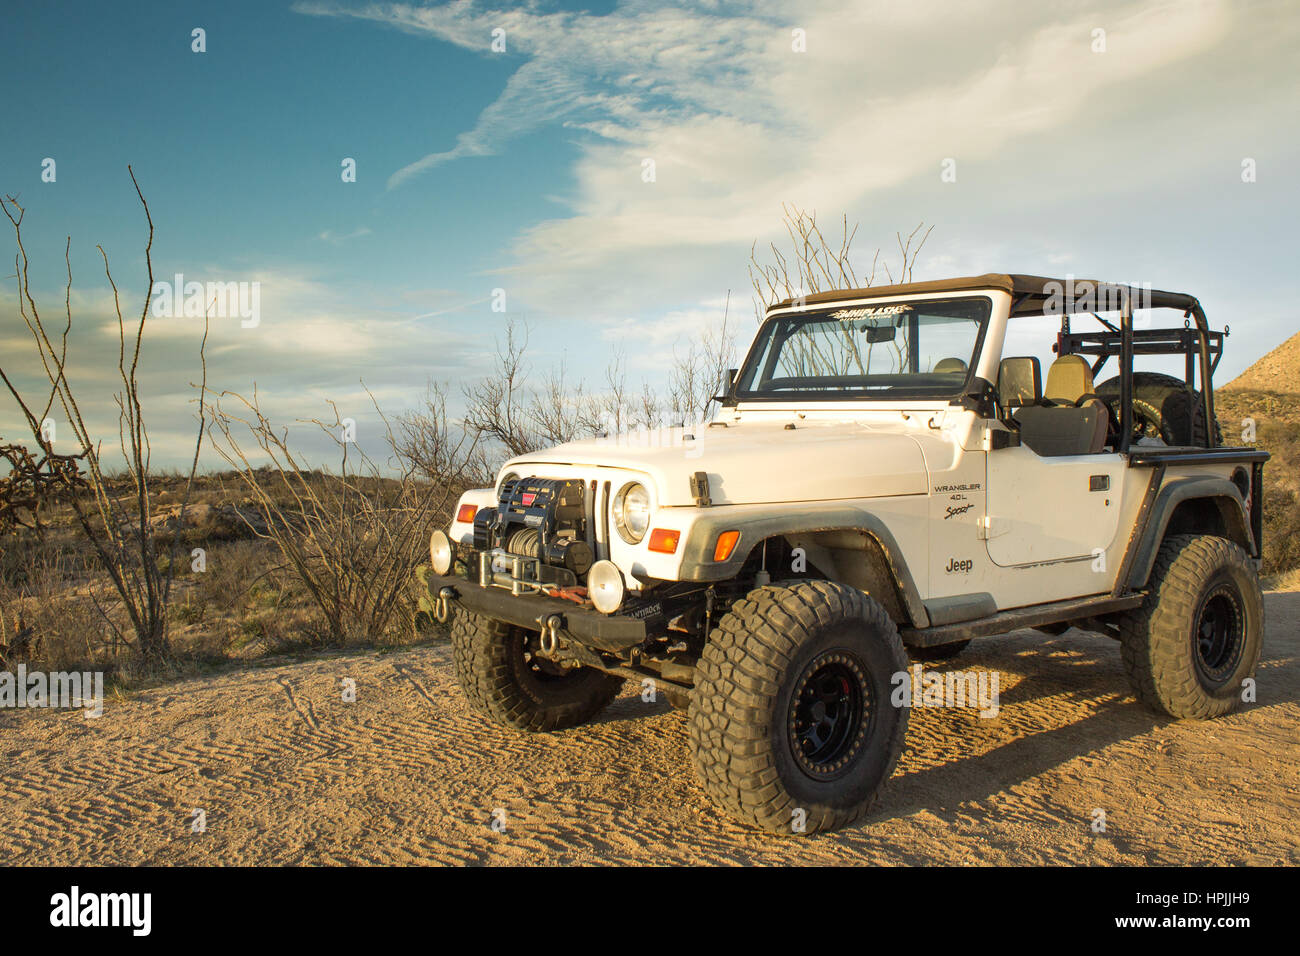 Offroad jeep in Tucson - Stock Image